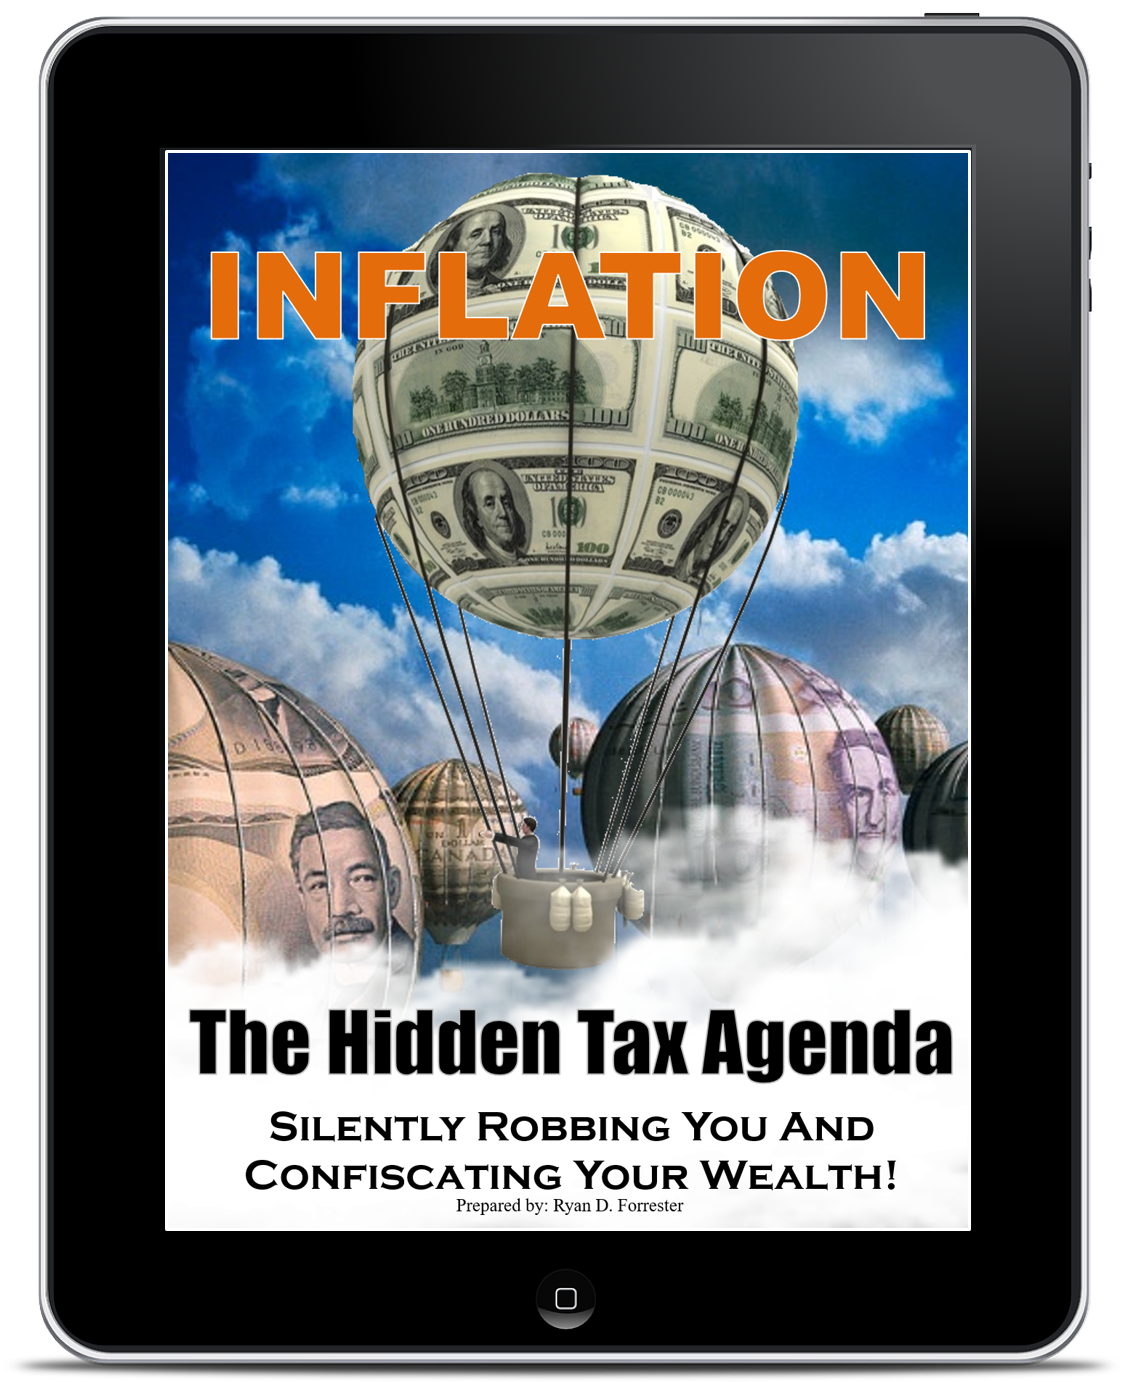 CoverPg_Inflation__The_Hidden_Tax_Agenda_Silently_Robbing_You_And_Confiscating_Your_Wealth